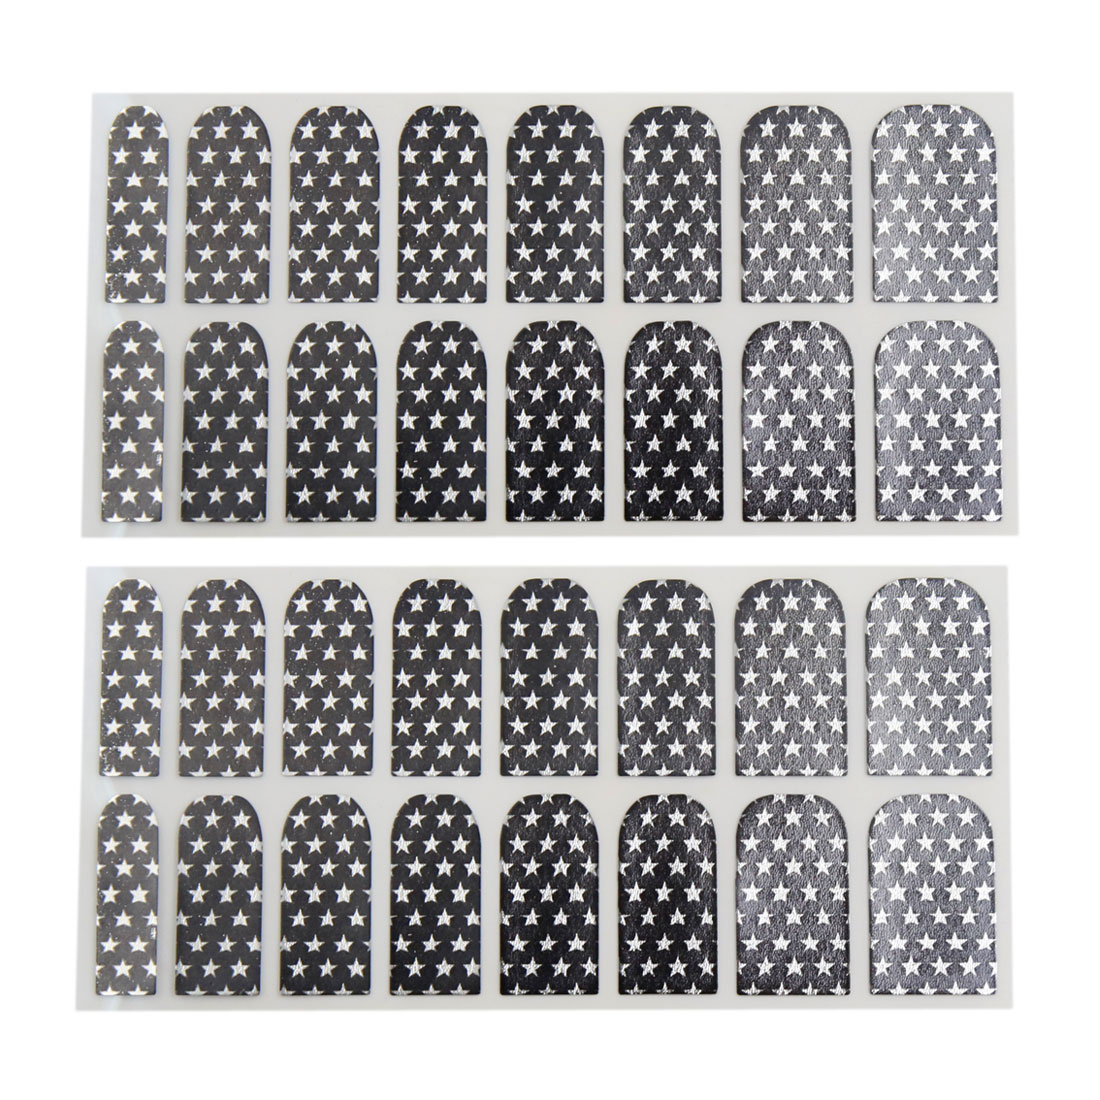 2 Set Black White Full DIY Nail Art Sticker Decals Foil Wraps Nails Polish Strip